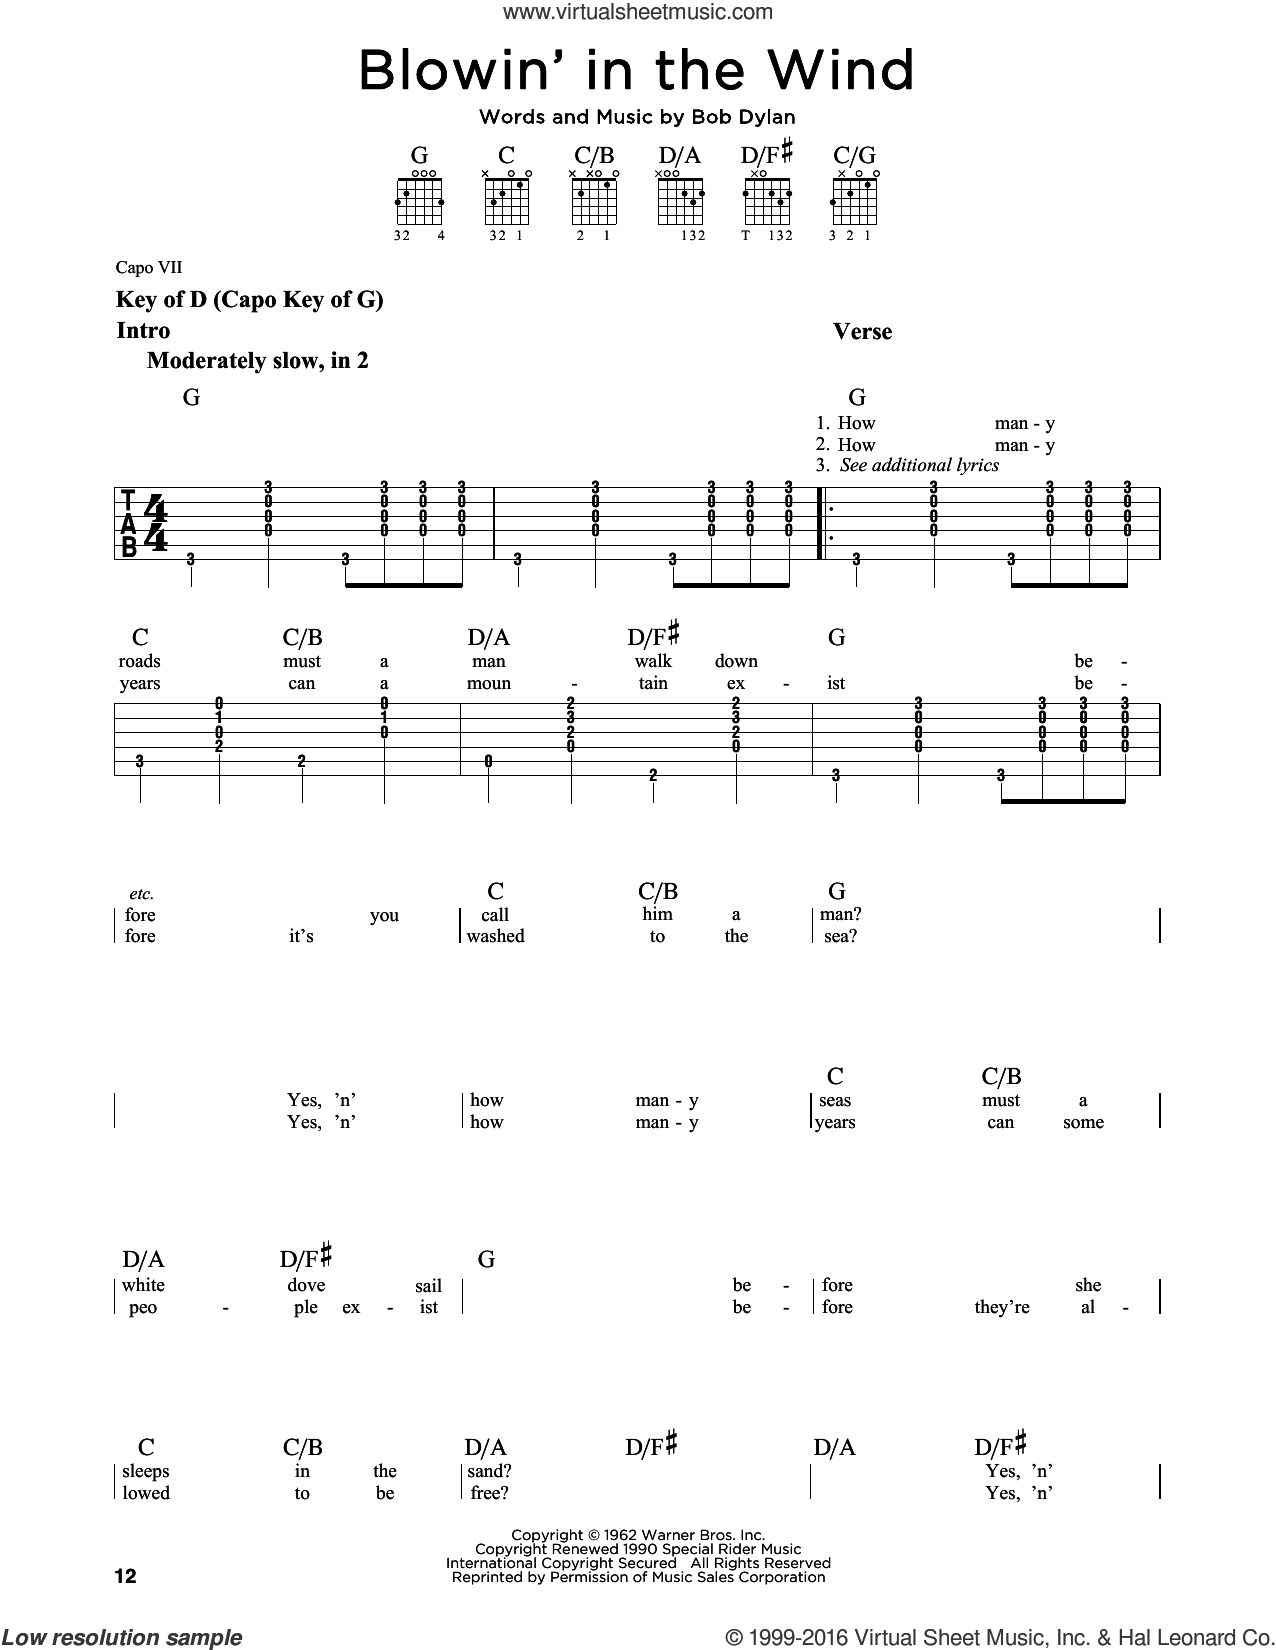 Blowin' In The Wind sheet music for guitar solo (lead sheet) by Bob Dylan, Peter, Paul & Mary and Stevie Wonder, intermediate guitar (lead sheet). Score Image Preview.